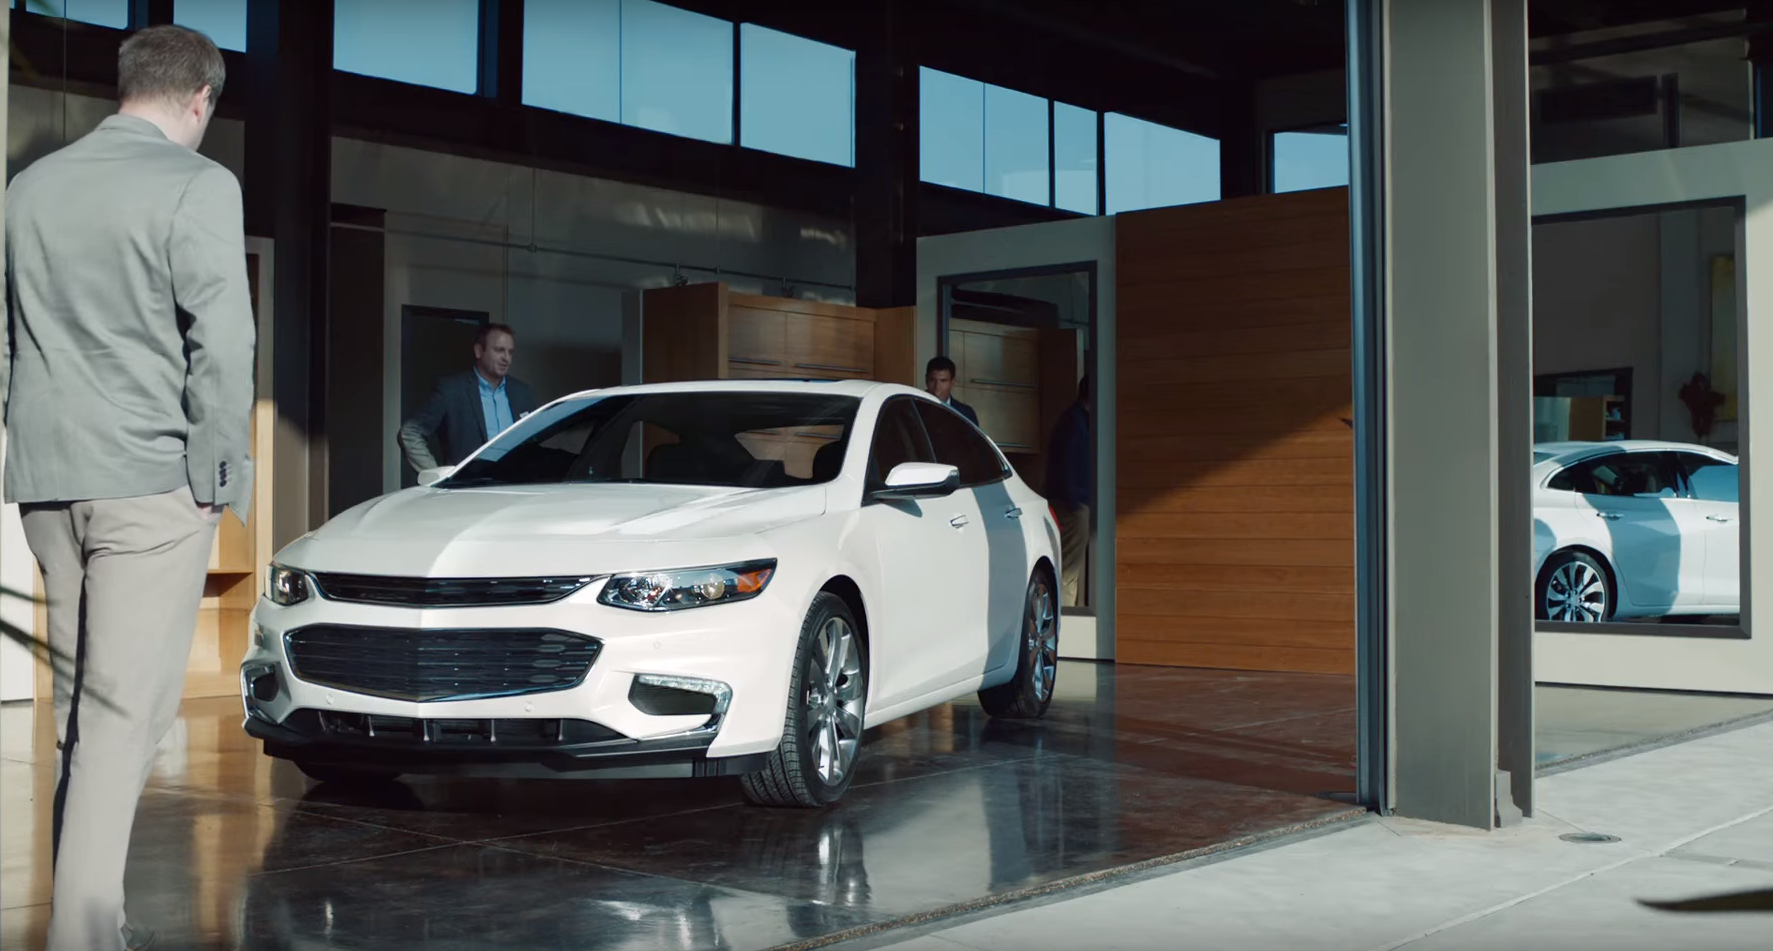 Chevy Commercial Insists The Malibu Is Not As Cry You Think Video News Wheel